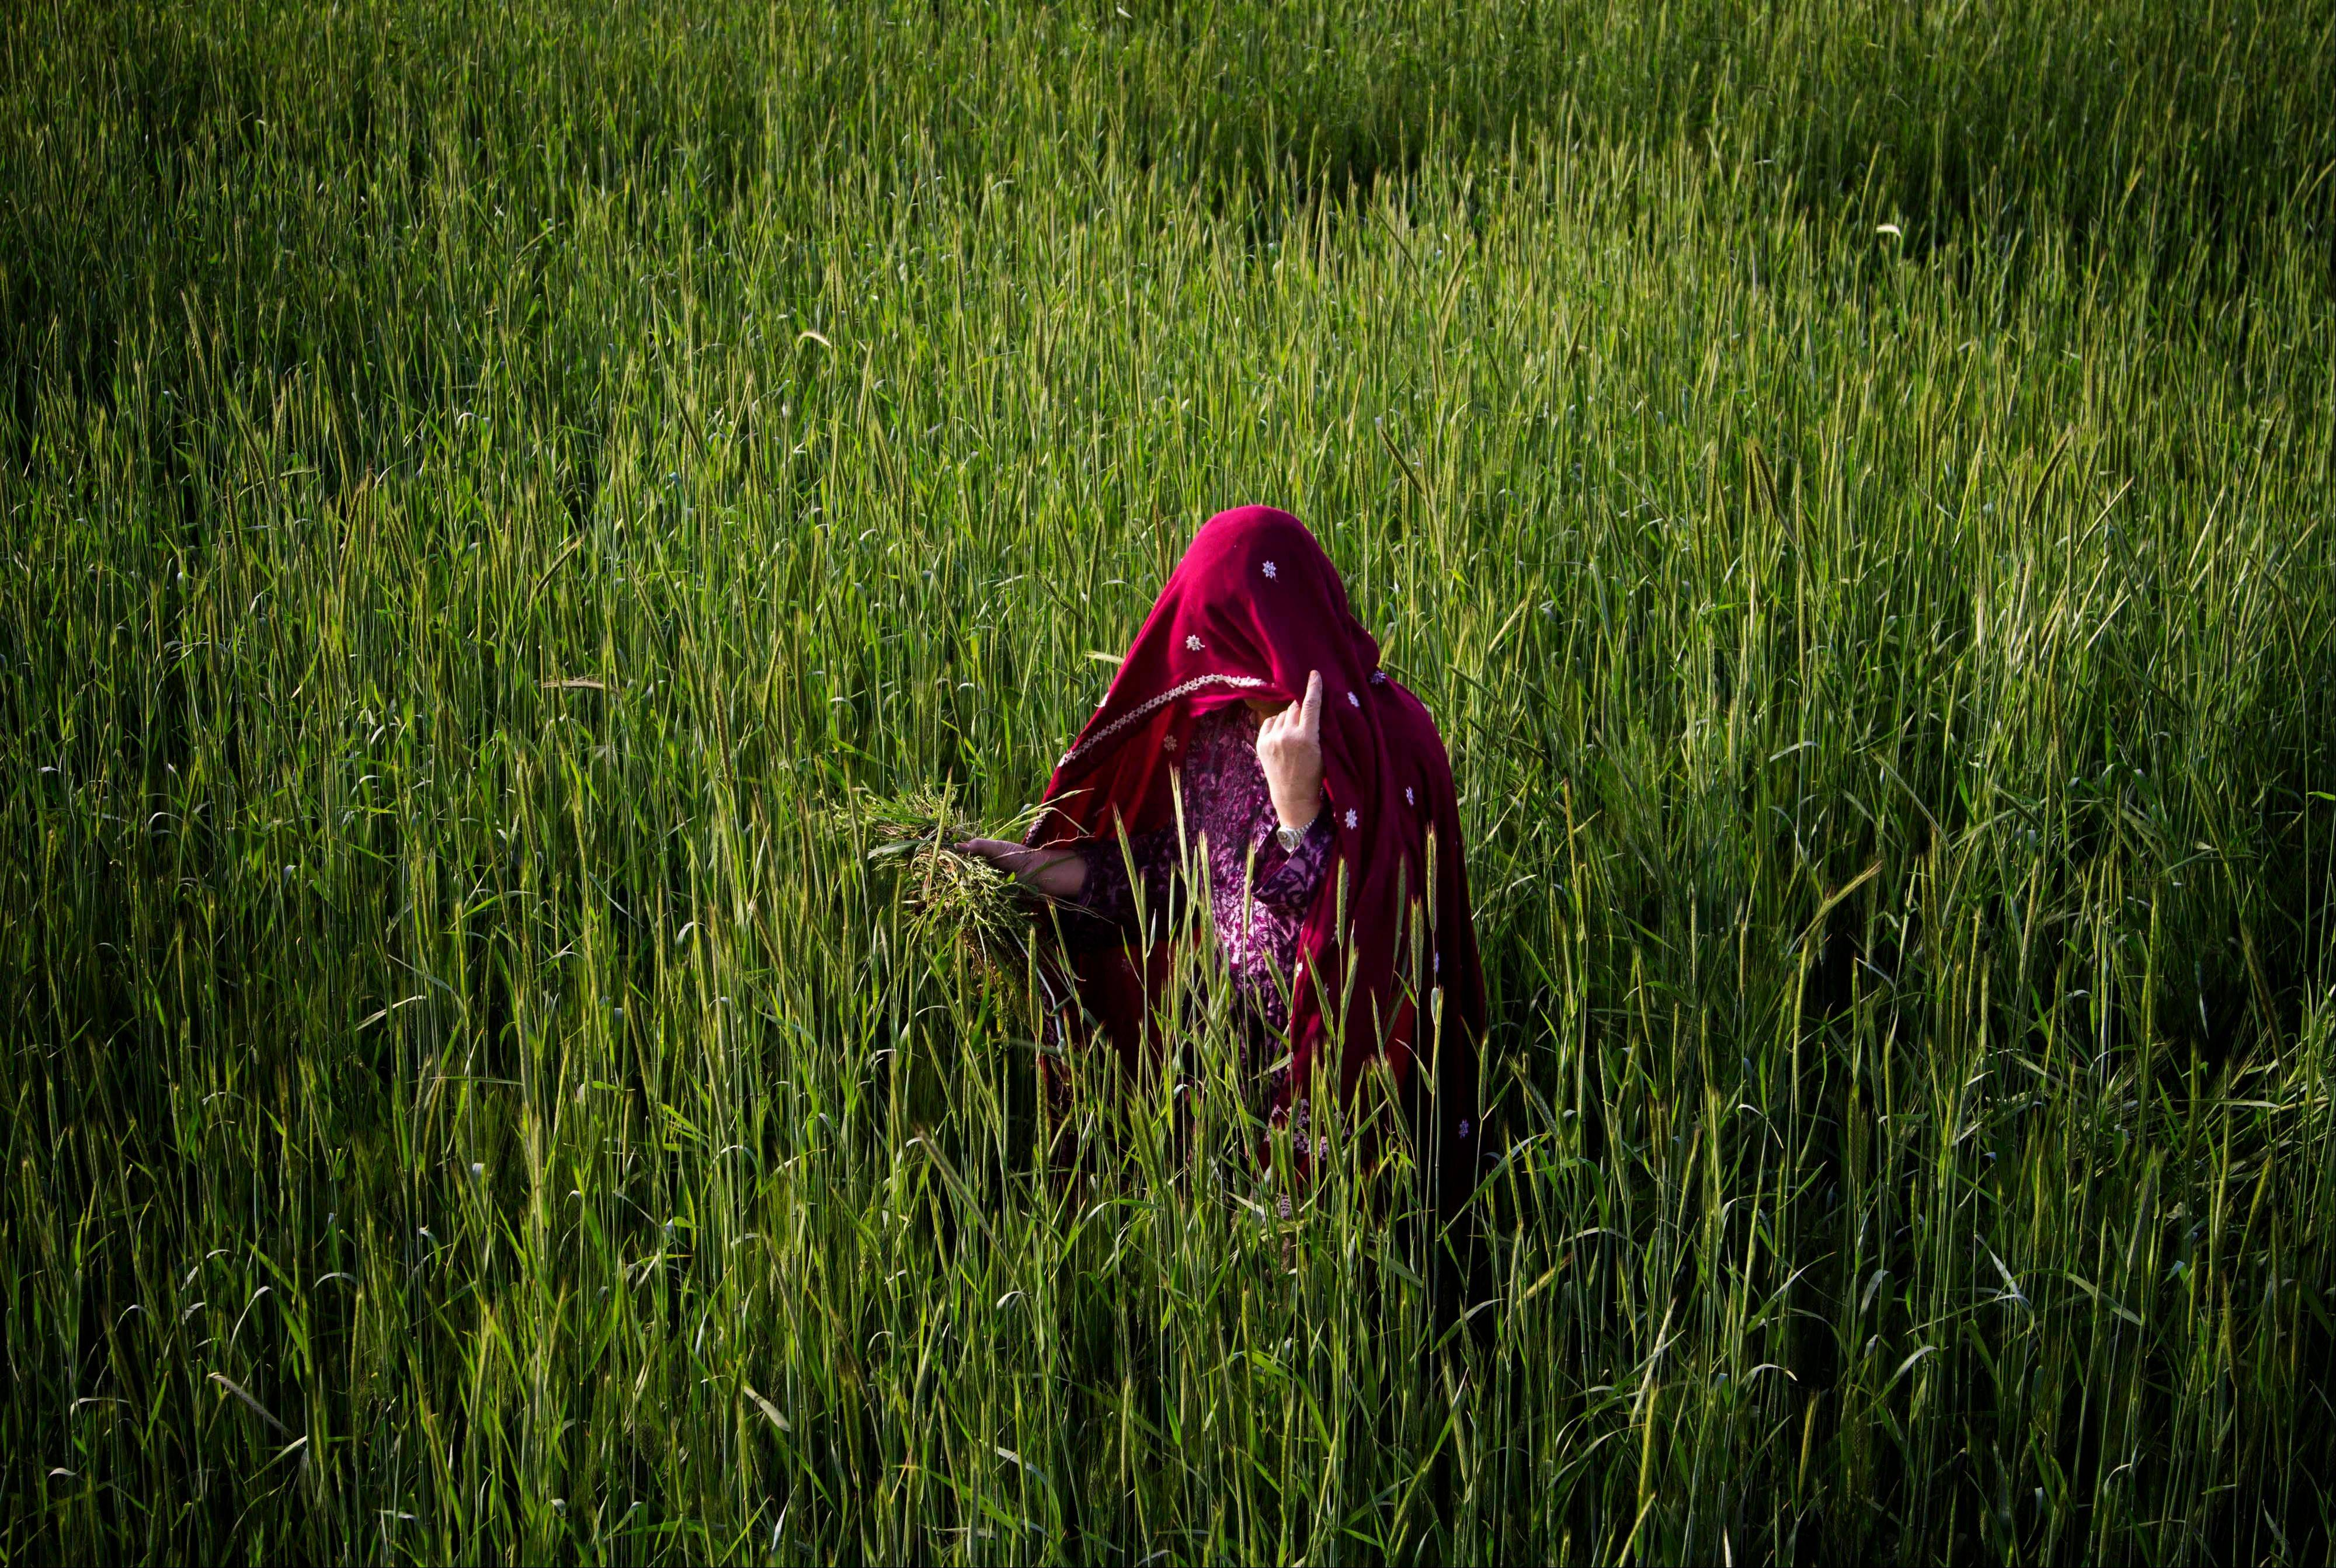 An Afghan woman harvests wheat on the outskirts of Kabul.